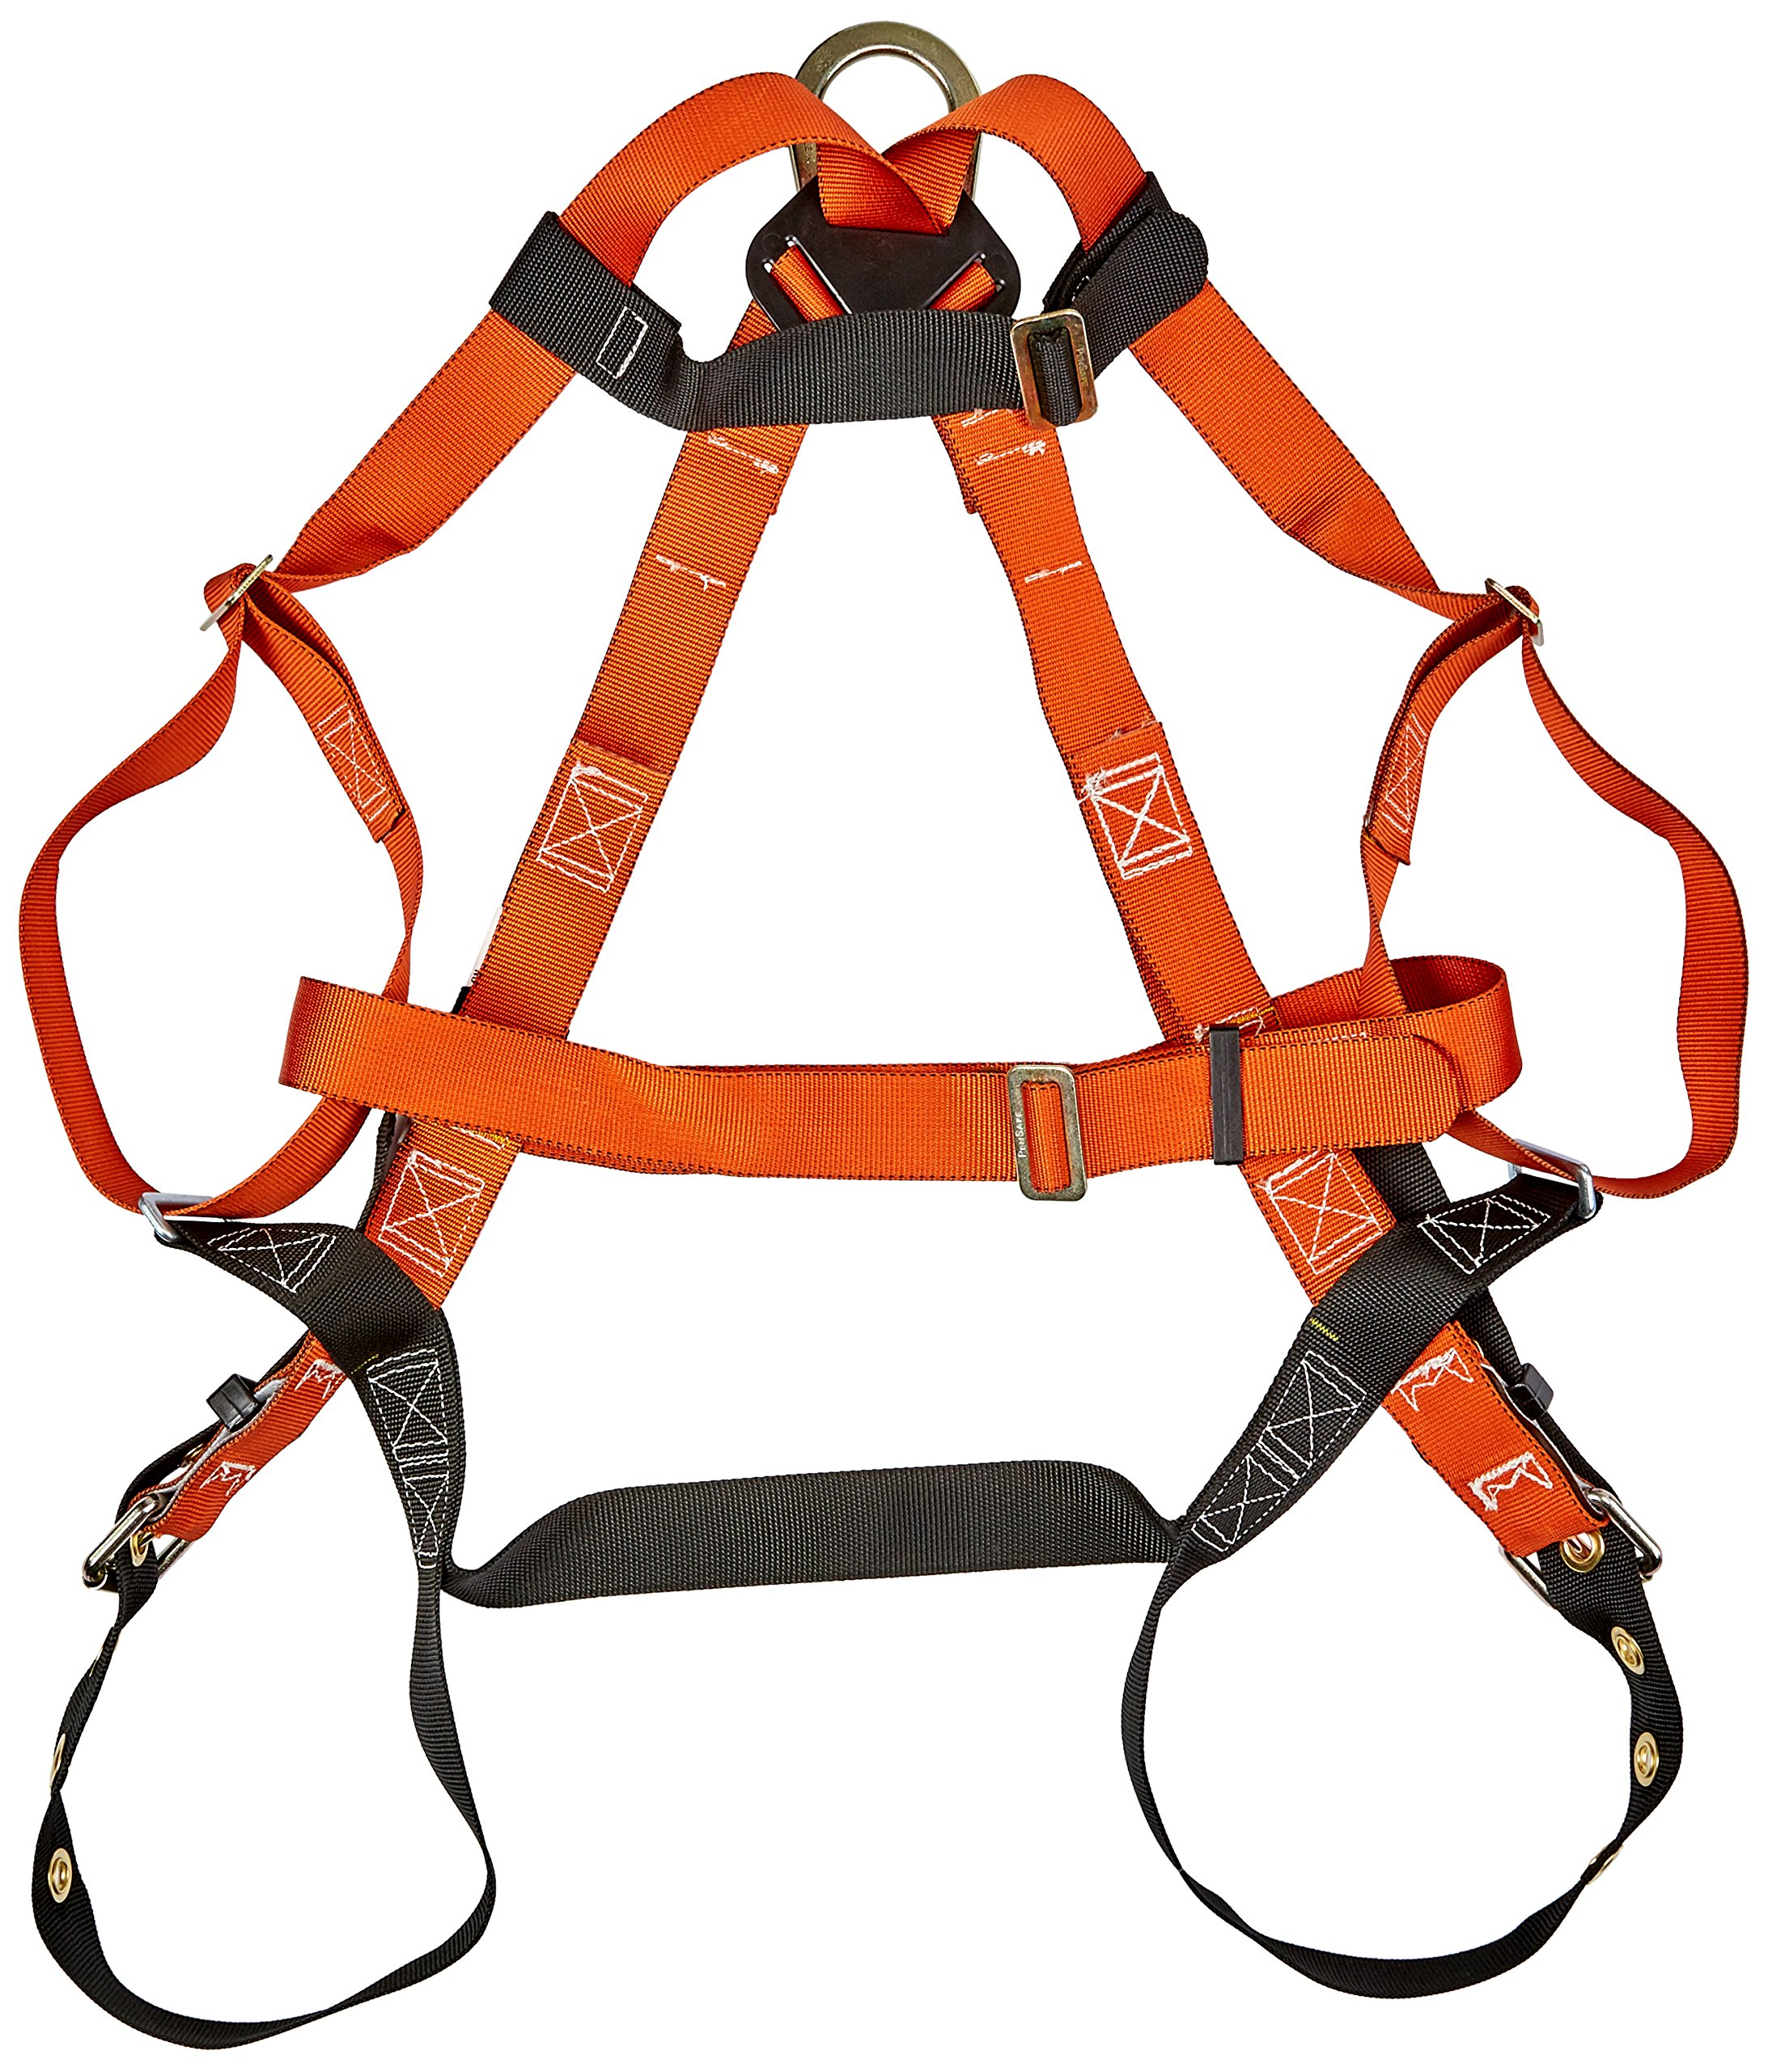 Klein Tools 87023 Lightweight Fall-Arrest Harness, 2X-Large by Klein Tools